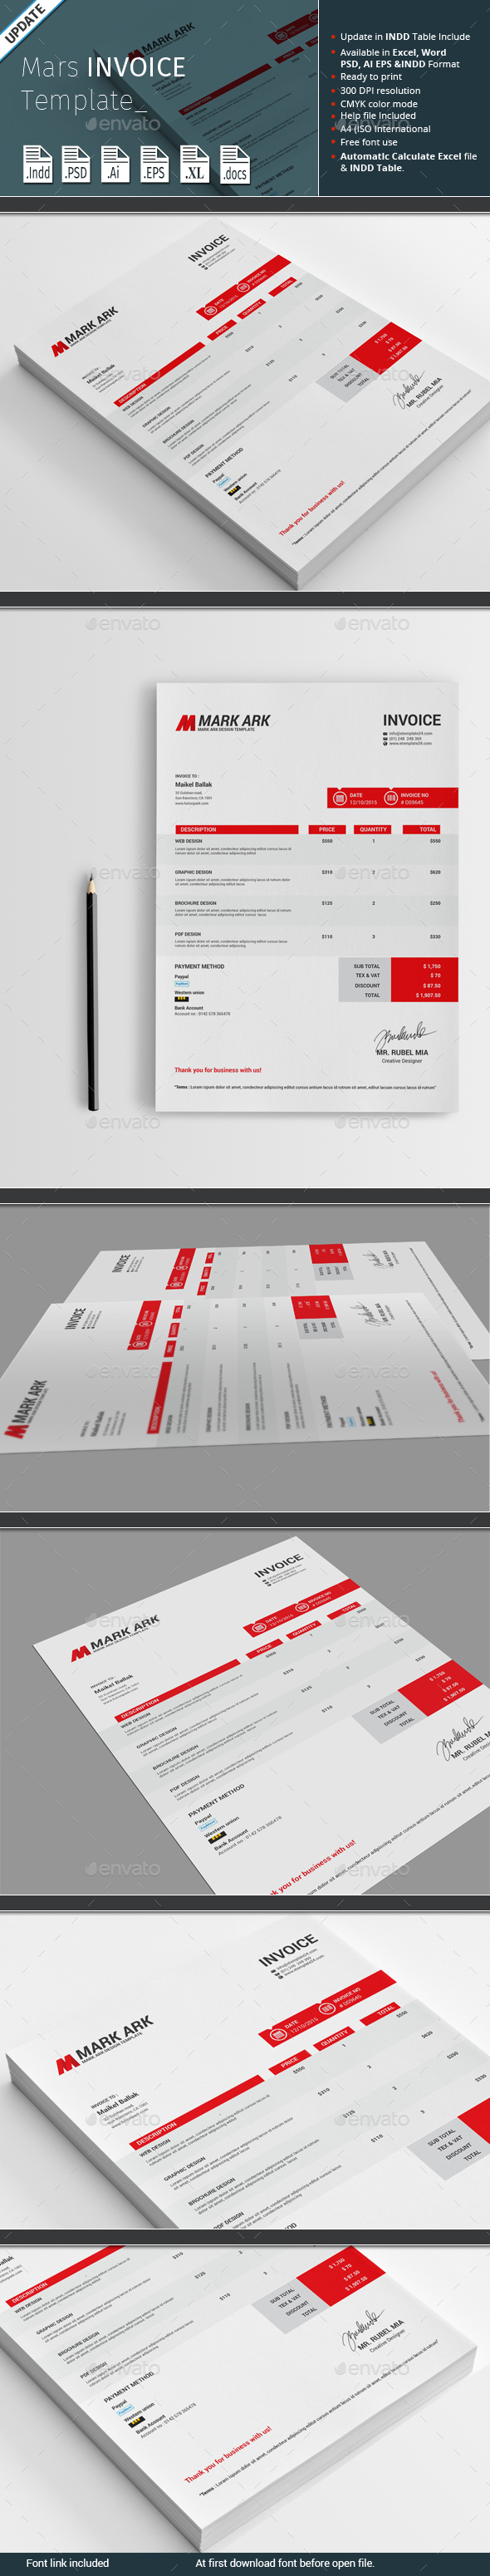 Mars Invoice Template - Proposals & Invoices Stationery